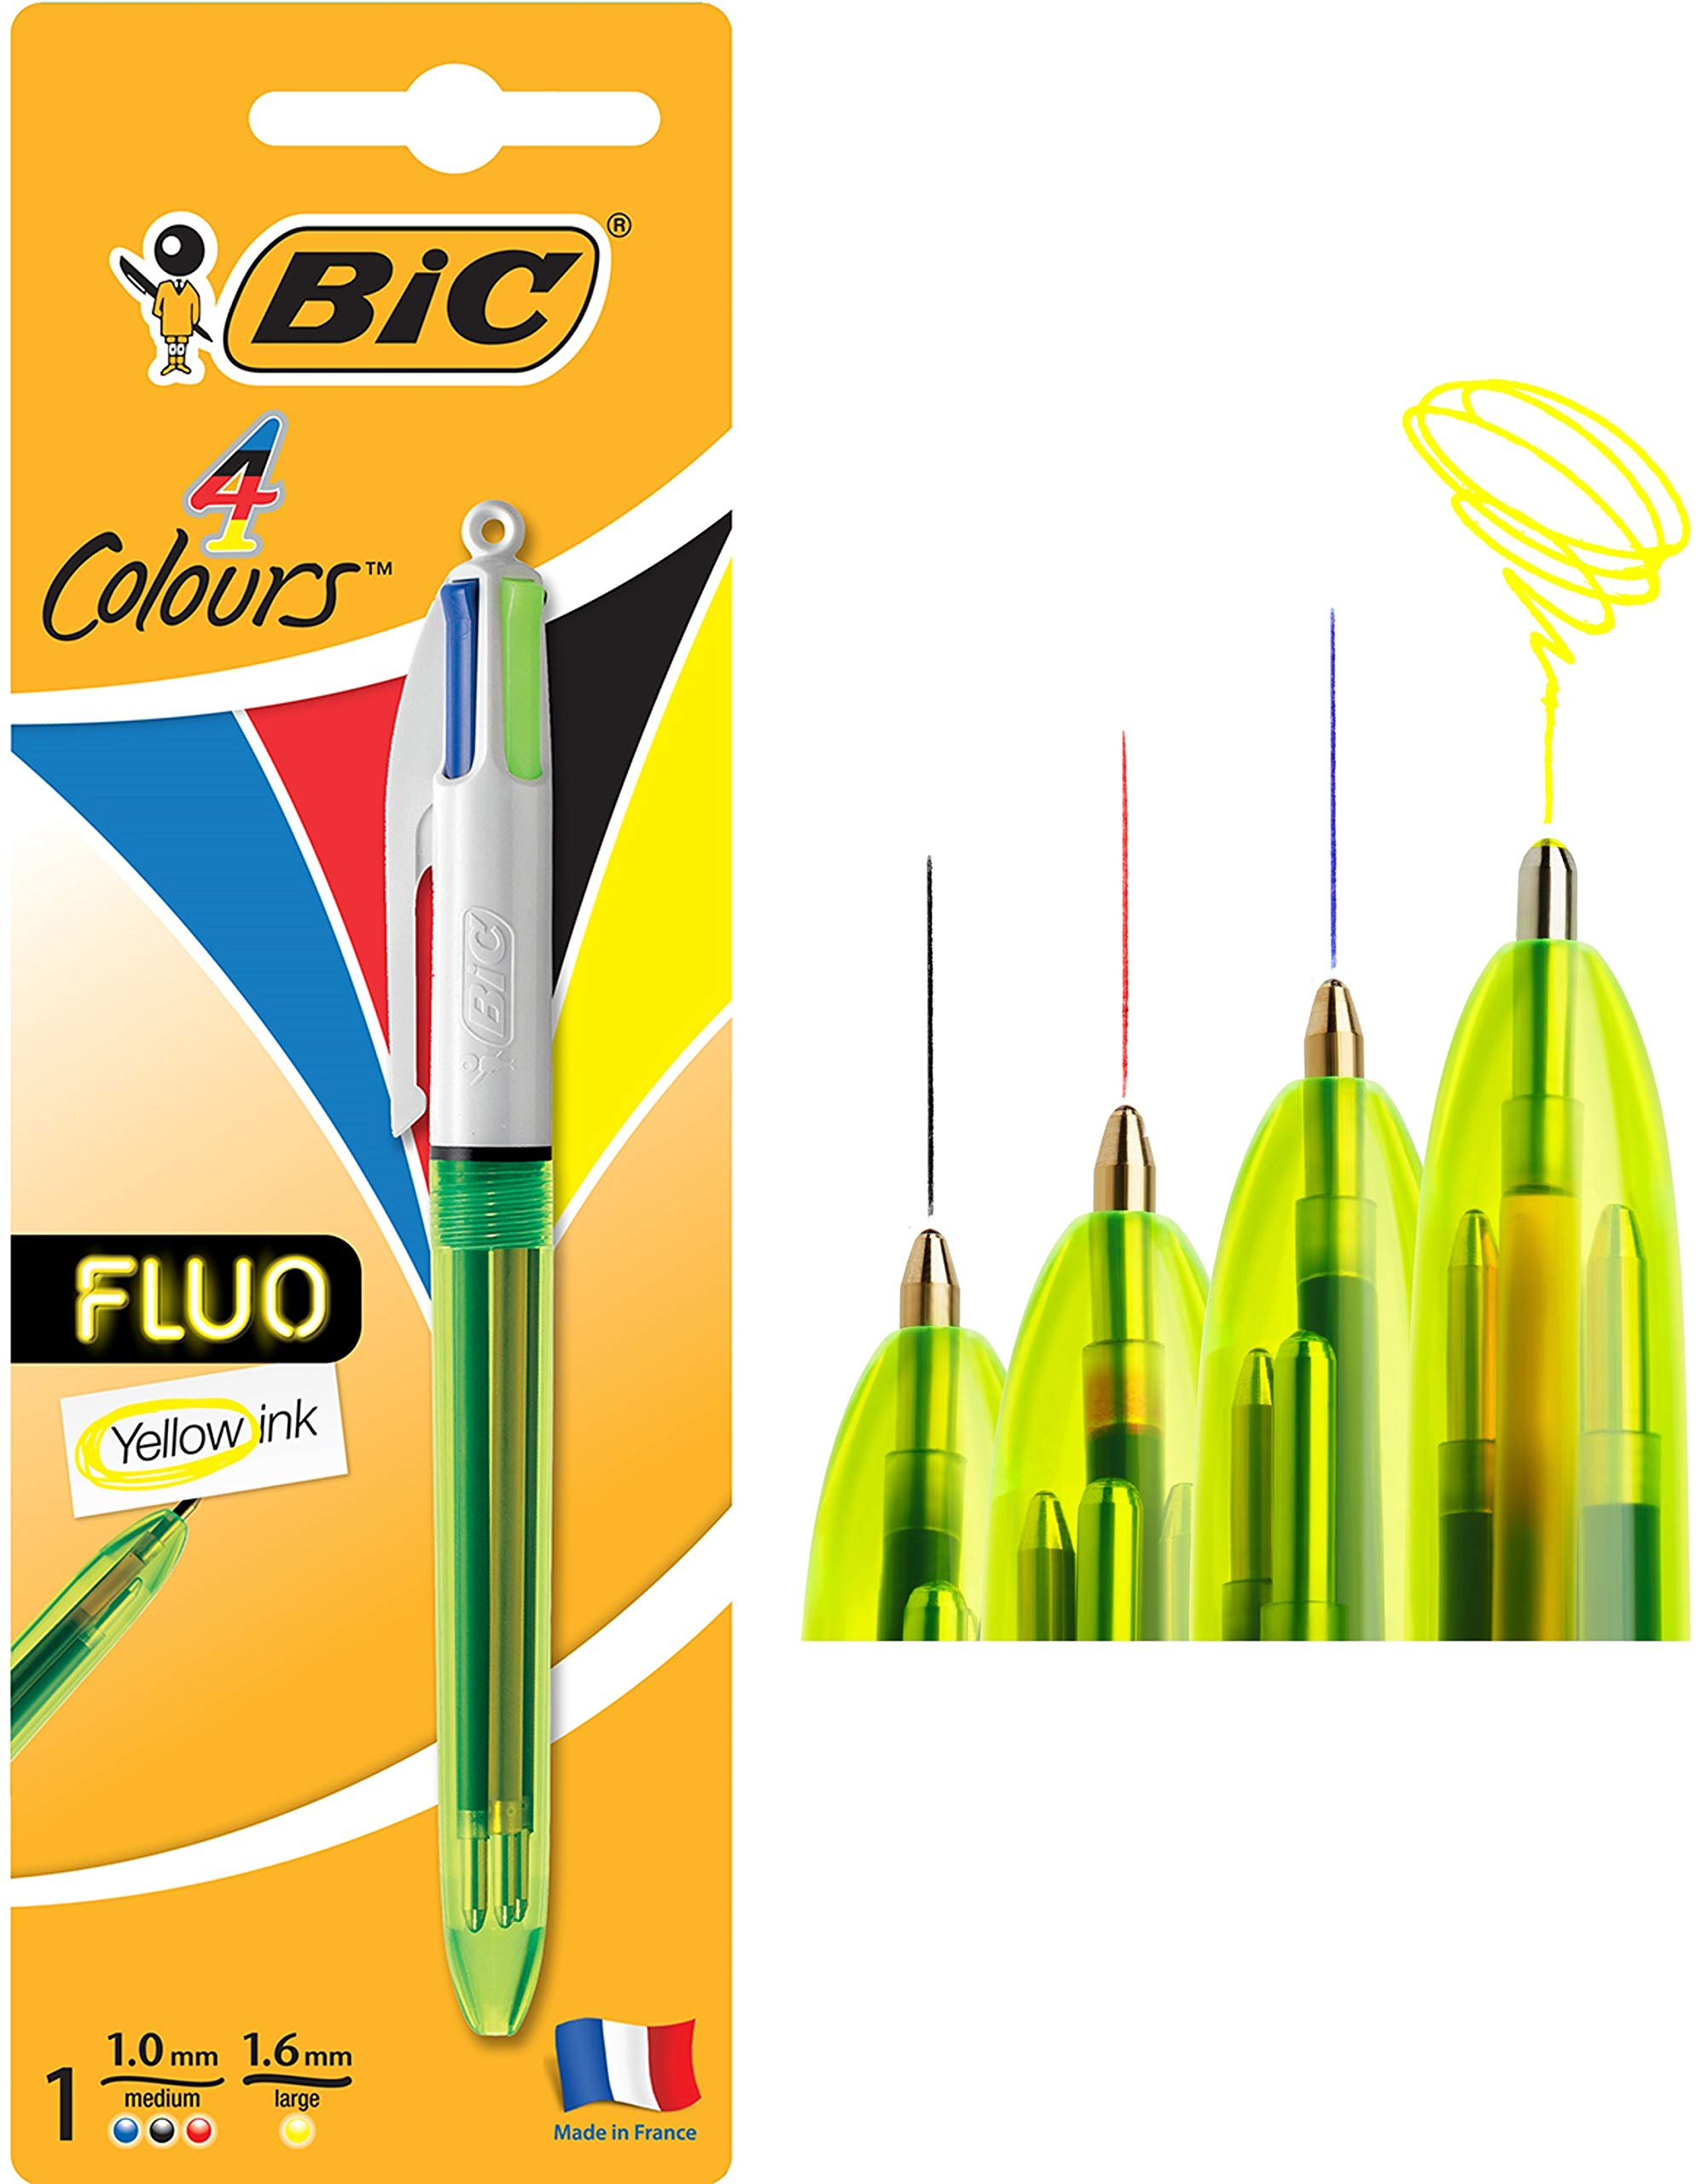 BIC 4 Colours Fluo Ballpoint Pen Black, Blue, Red and Fluorescent Yellow Ink Colours 1 Pack